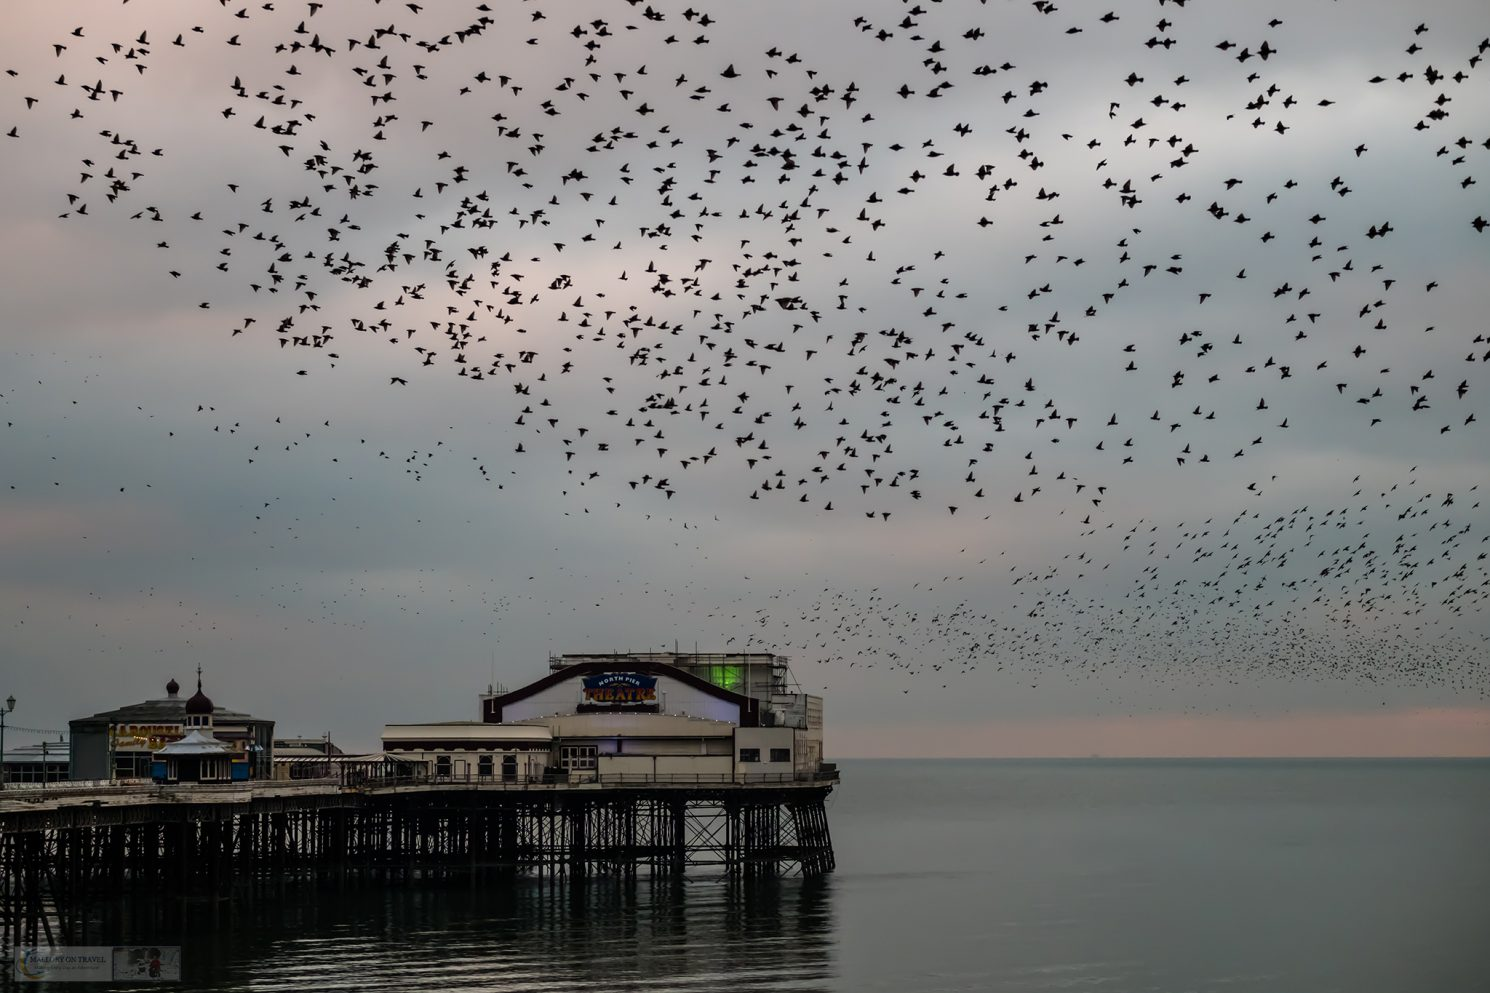 The North Pier murmuration, roosting starlings gather at dusk on the North Shore of Blackpool, on the Fylde Coast of Lancashire on Mallory on Travel adventure travel, photography, travel Iain Mallory_Murmuration 018